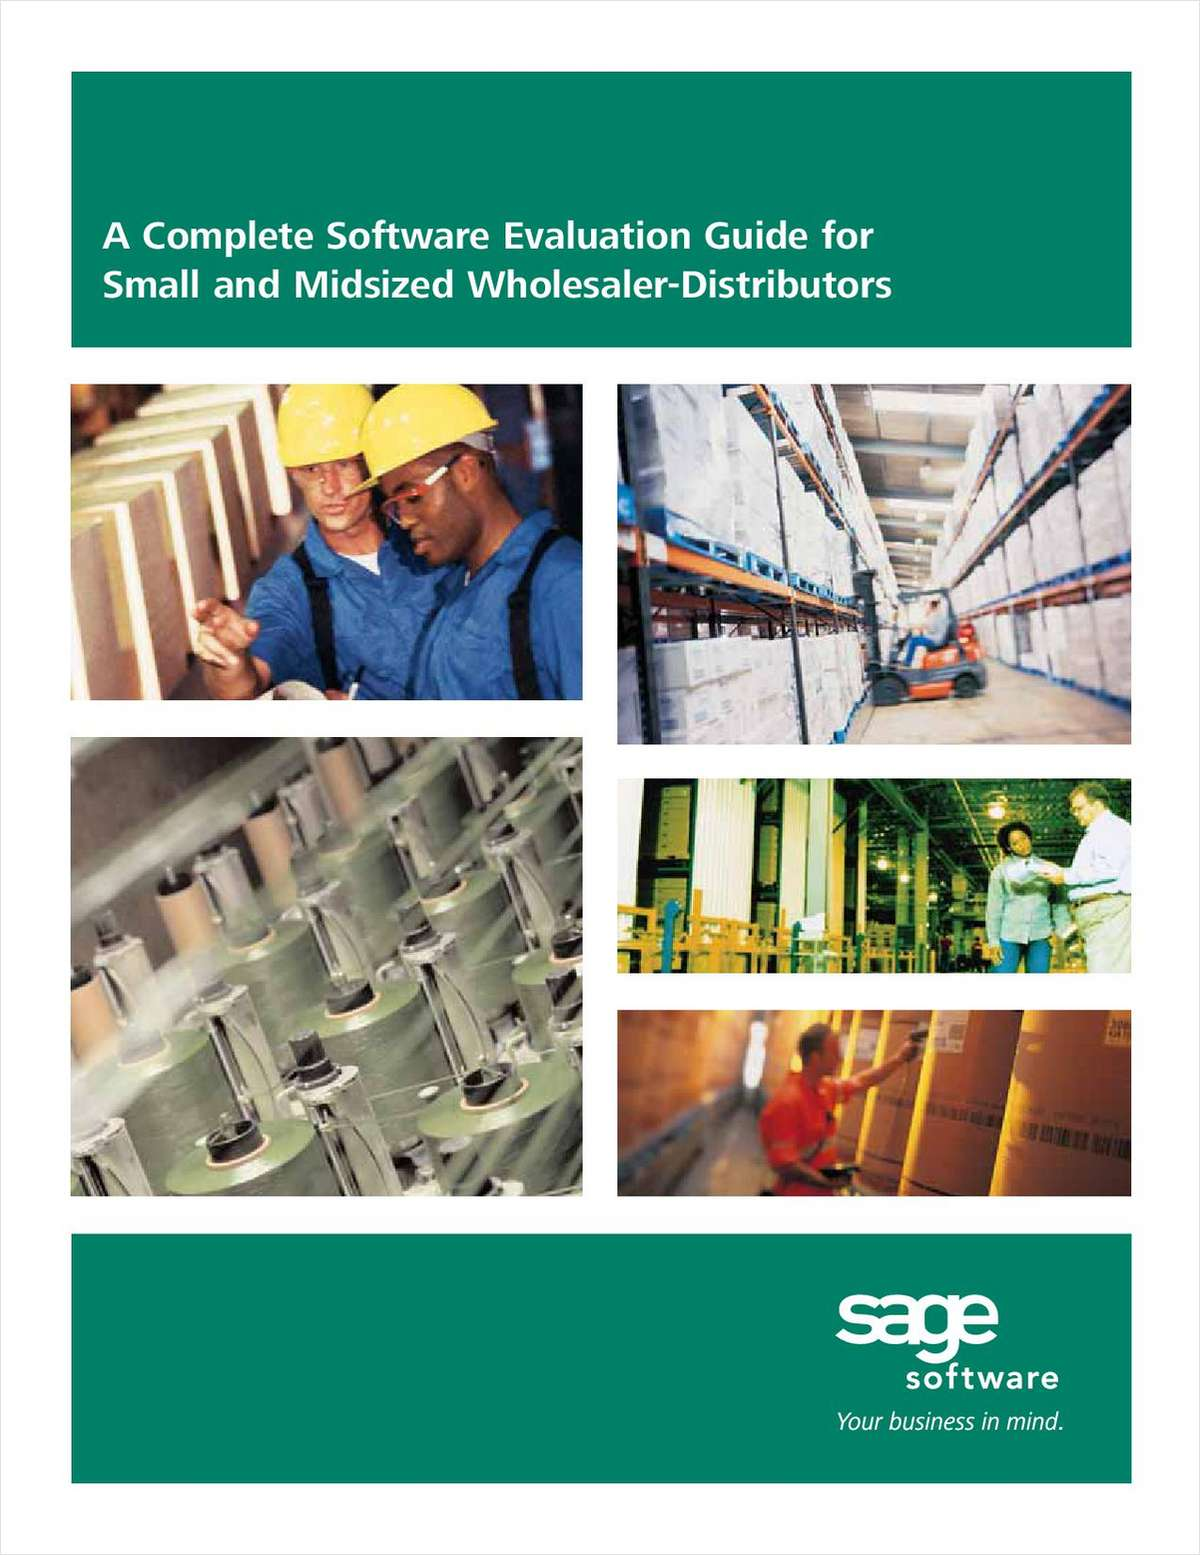 Software Evaluation Guide for Small to Midsized Wholesaler/Distributors